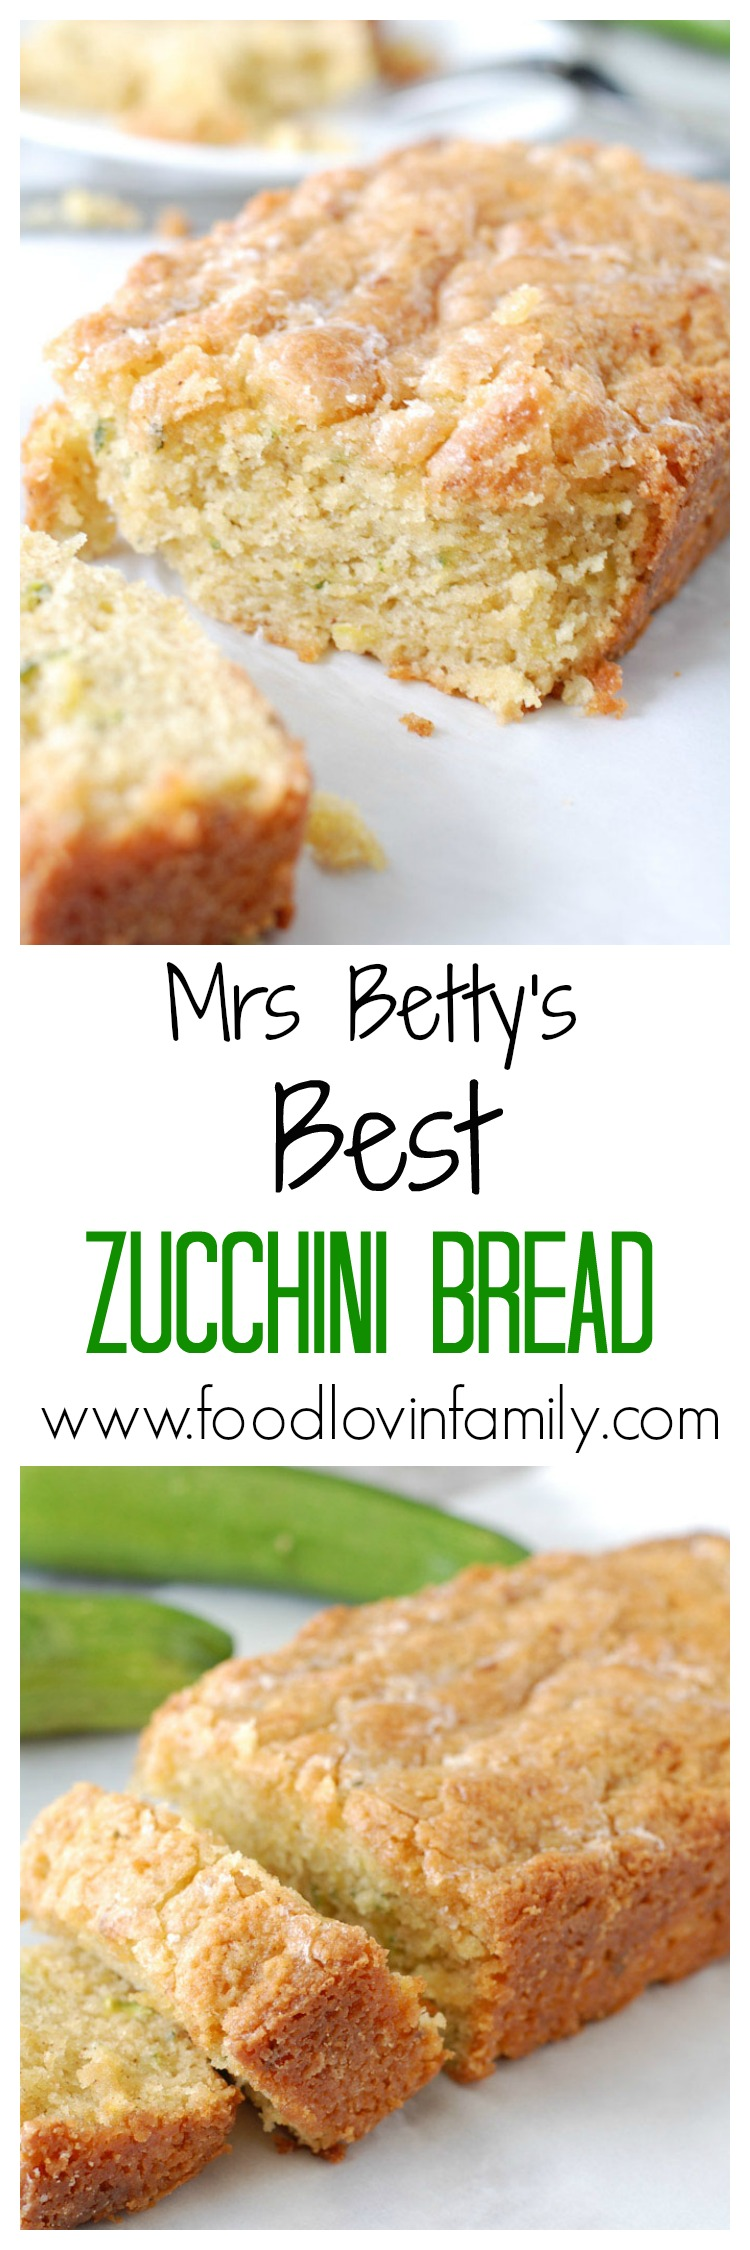 THE BEST and easy zucchini bread full of spices and a secret ingredient. This will be your go to zucchini bread recipe.